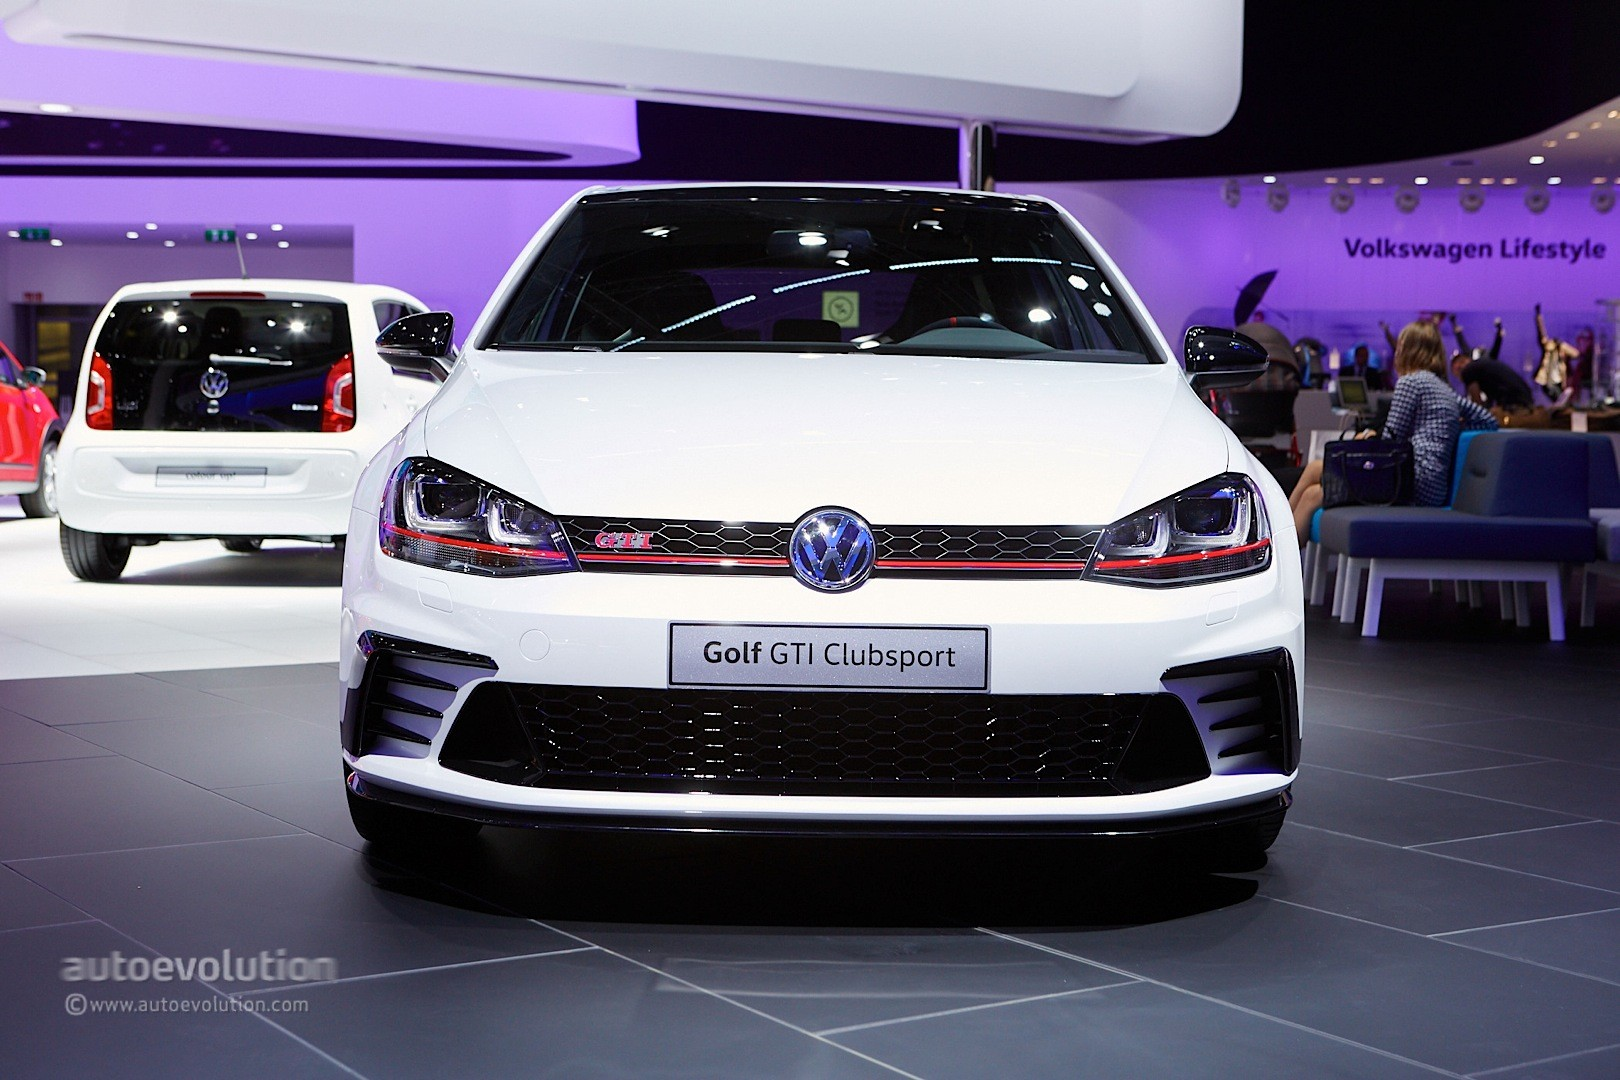 Golf Gti Clubsport Edition 40 Launched Costs More Than Civic Type R